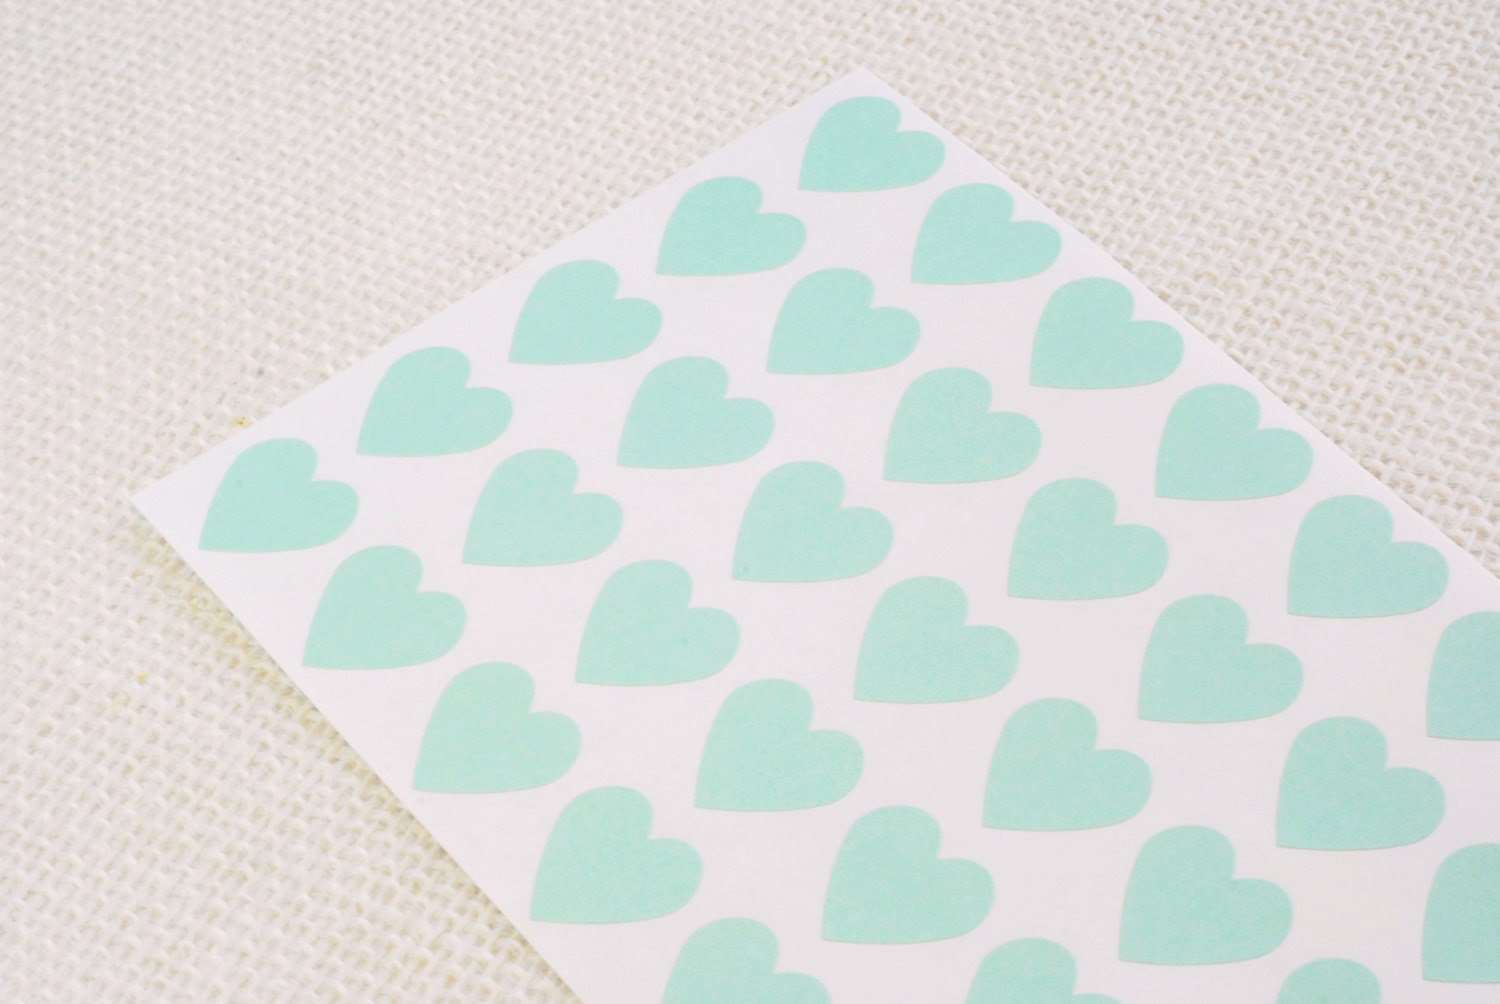 """Mint Green Heart Stickers 3/4"""" - Free Shipping / Pack of 82 / Envelope Seals / Wedding Seals / Wedding Invitation Seals / Heart Labels"""